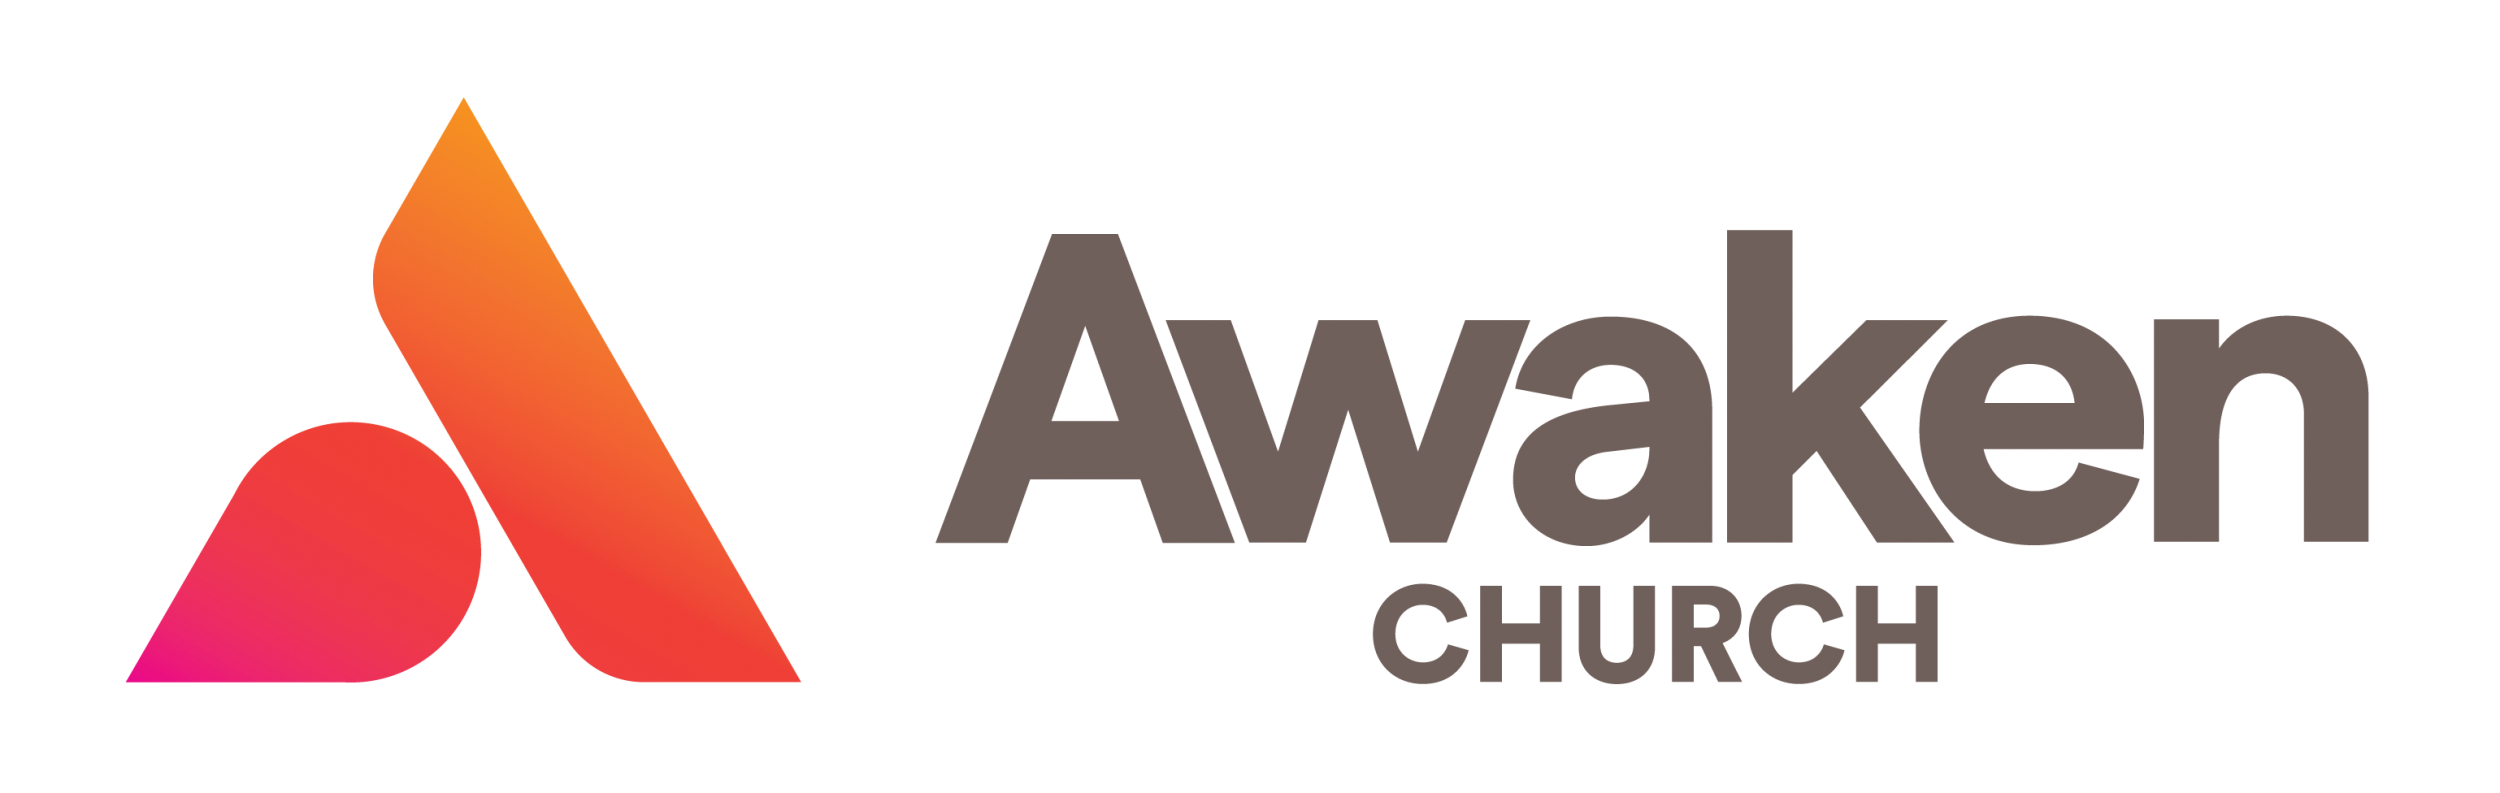 Awaken Church